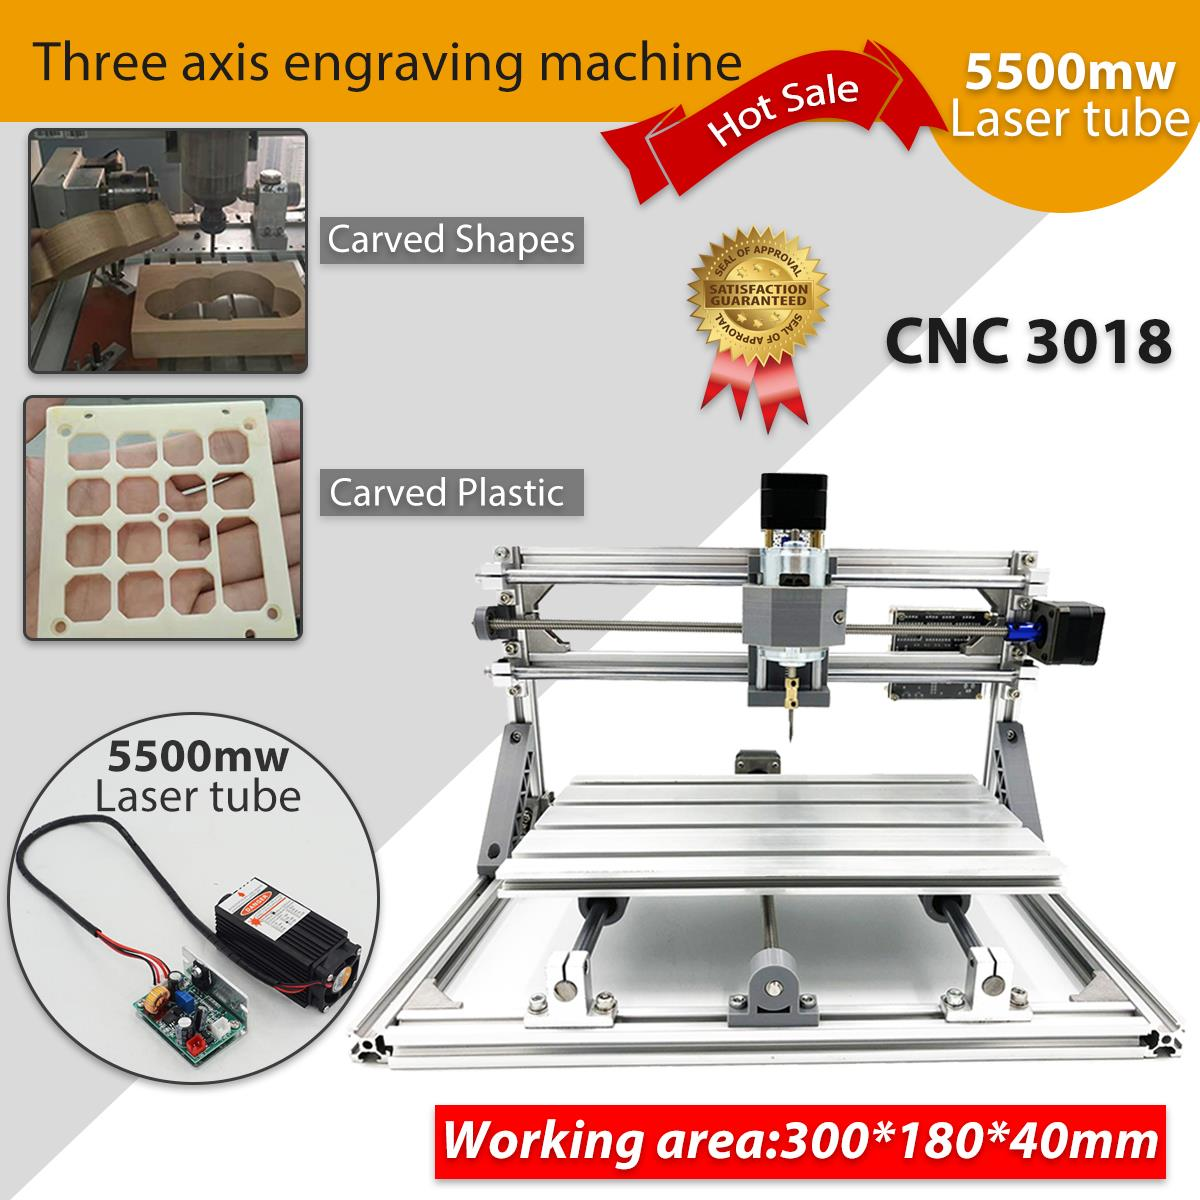 CNC 3018 Mini Engraving Machine 5500mw/2500mw Laser PCB Milling Machine Wood Carving Machine GRBL Control CNC Router Kit cnc3018 er11 diy cnc engraving machine pcb milling machine wood router laser engraving grbl control cnc 3018 best toys gifts